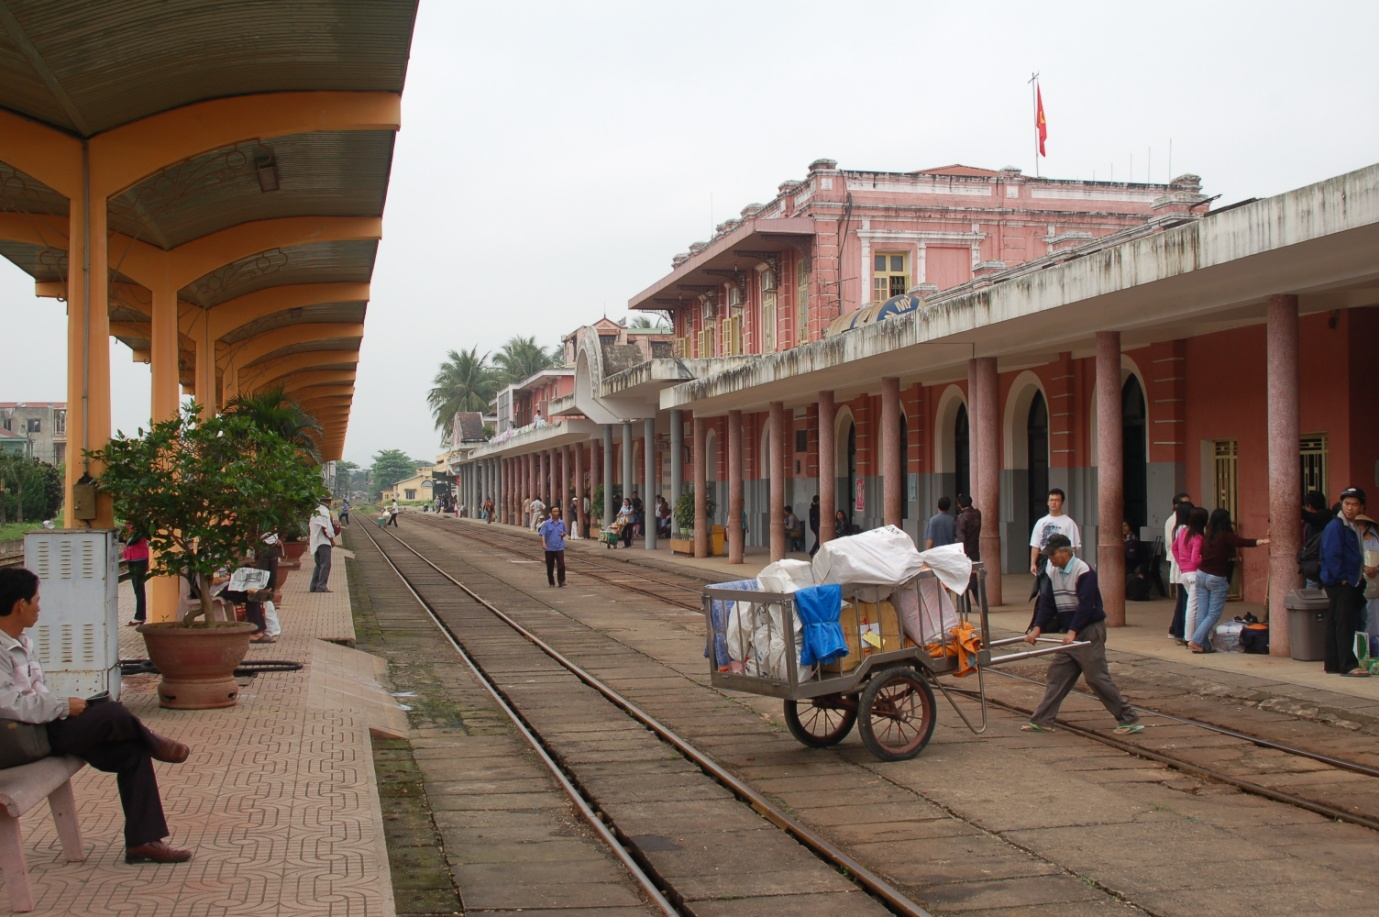 Train station in Vietnam